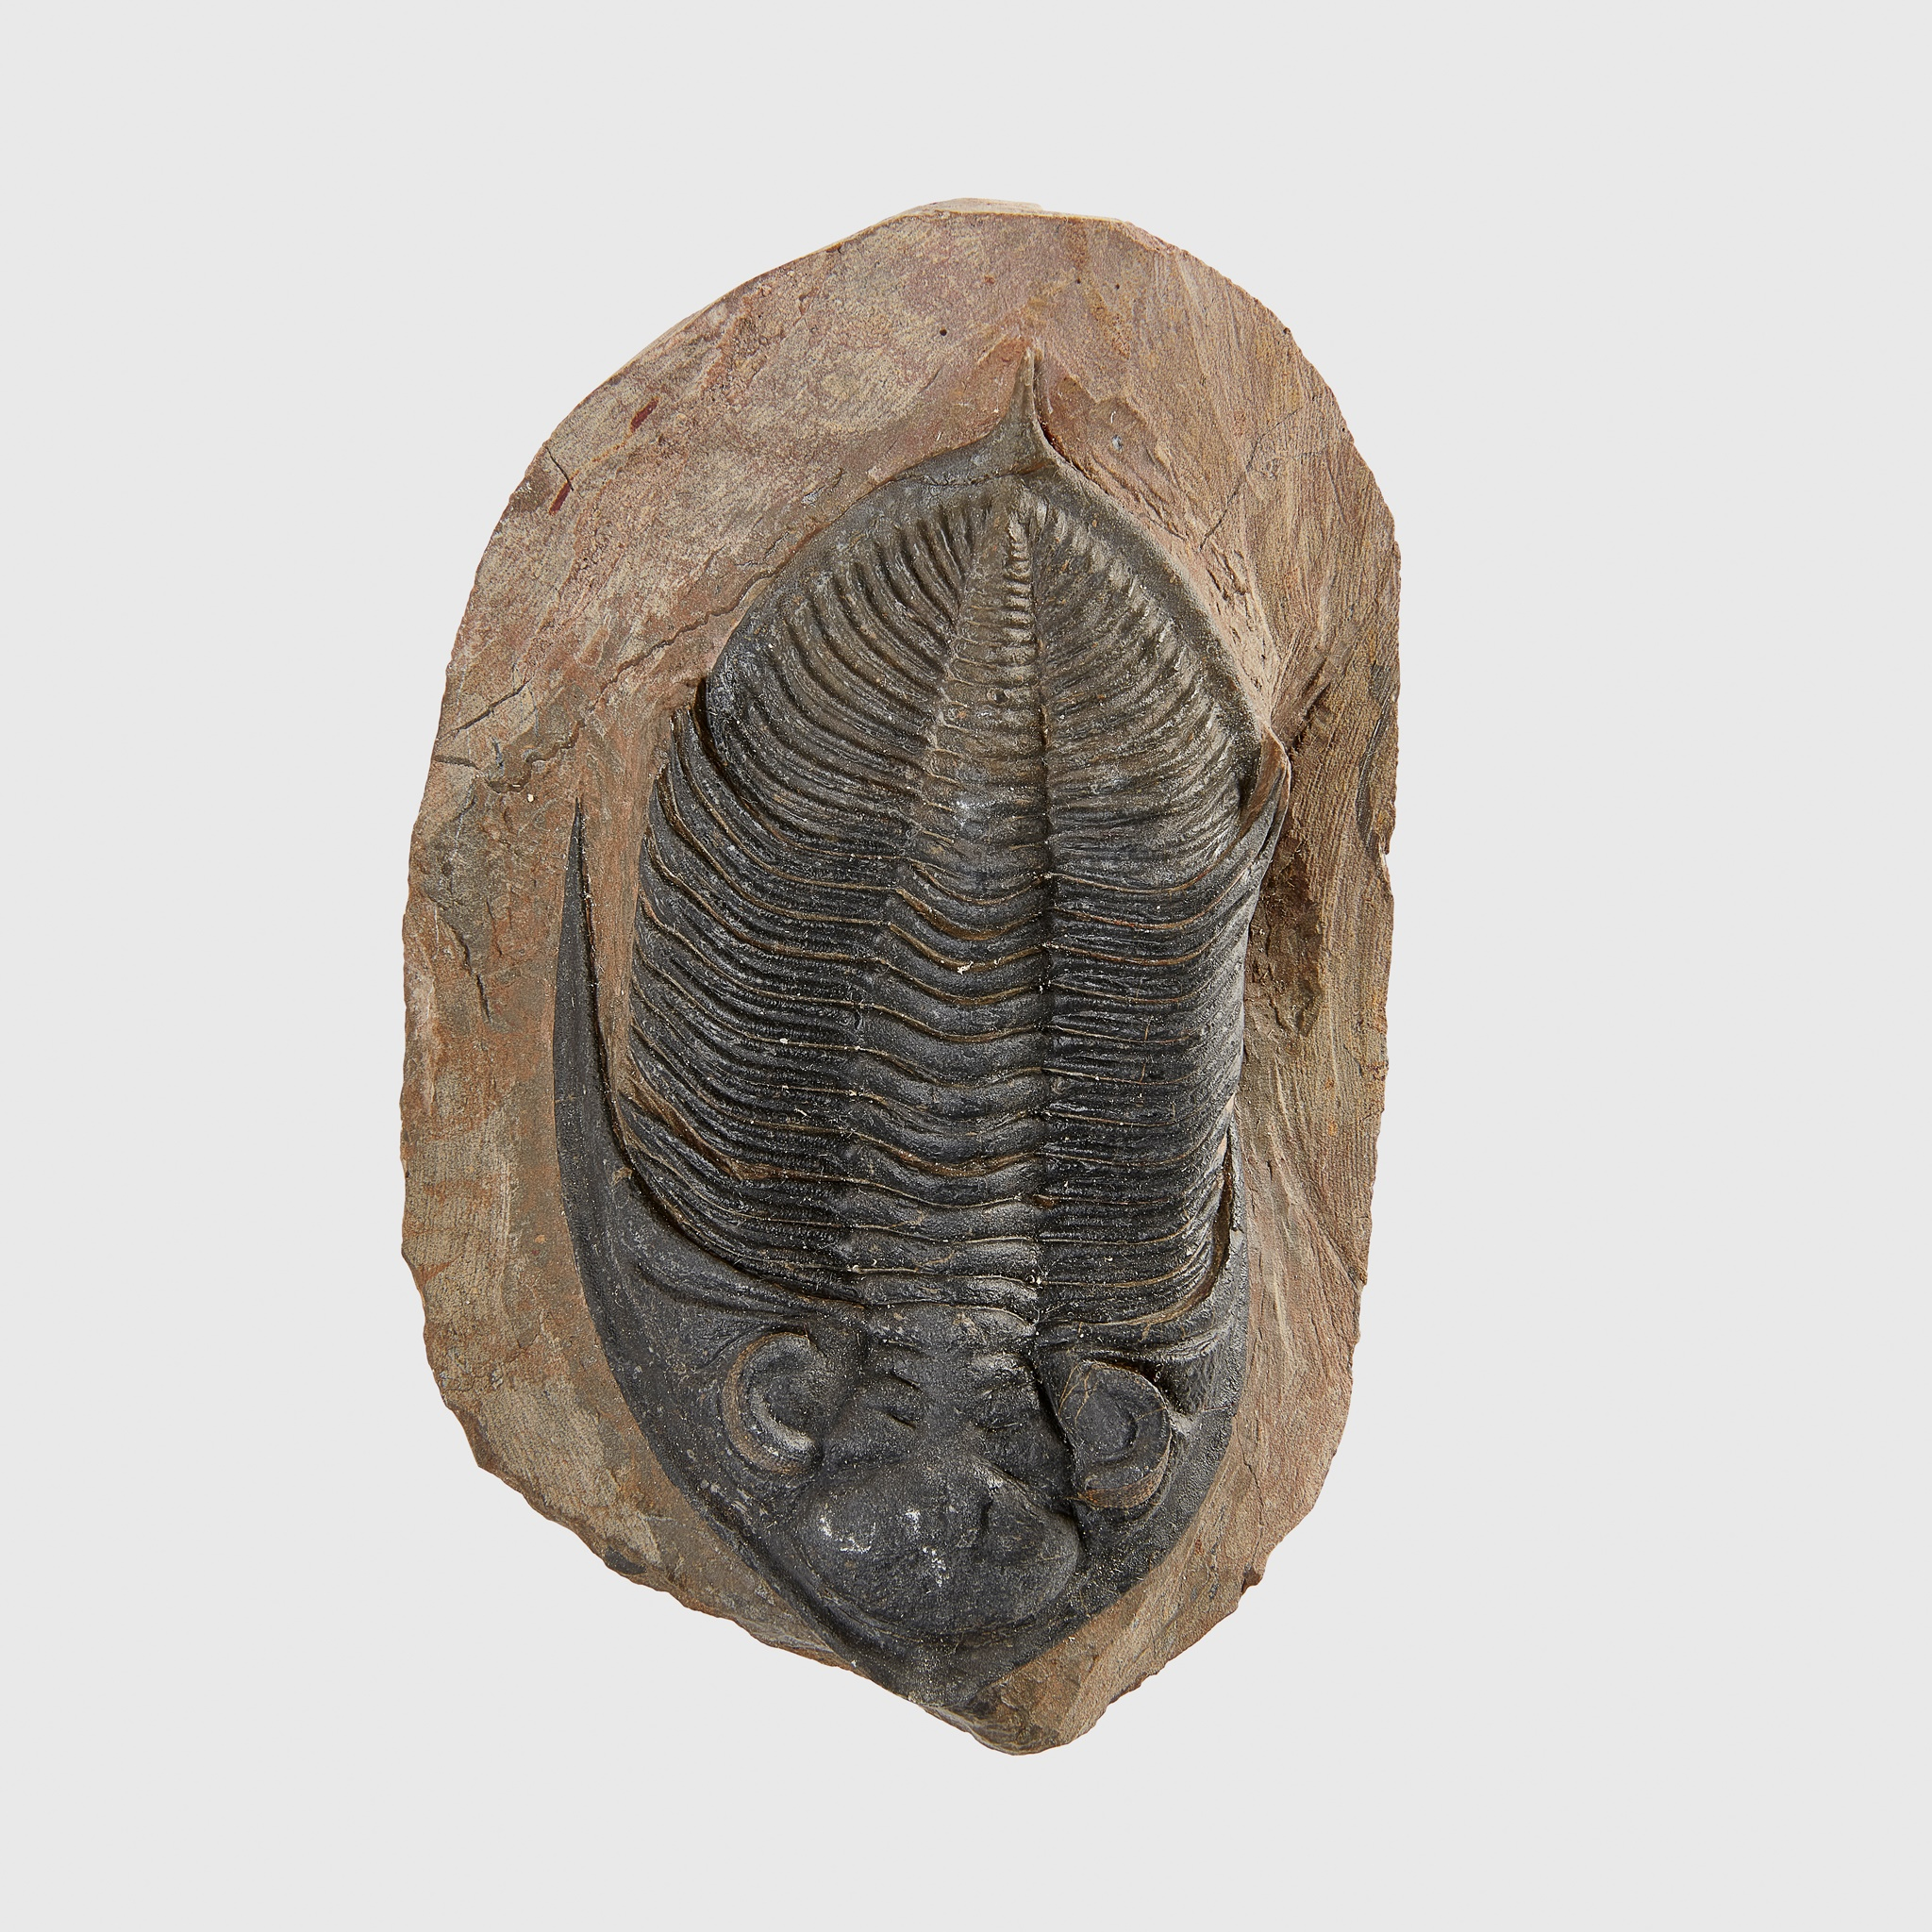 TRILOBITE FOSSIL, ODONTOCHILE SP, MOROCCO, DEVONIAN PERIOD, 400 MILLION YEARS B.P. - Image 2 of 2